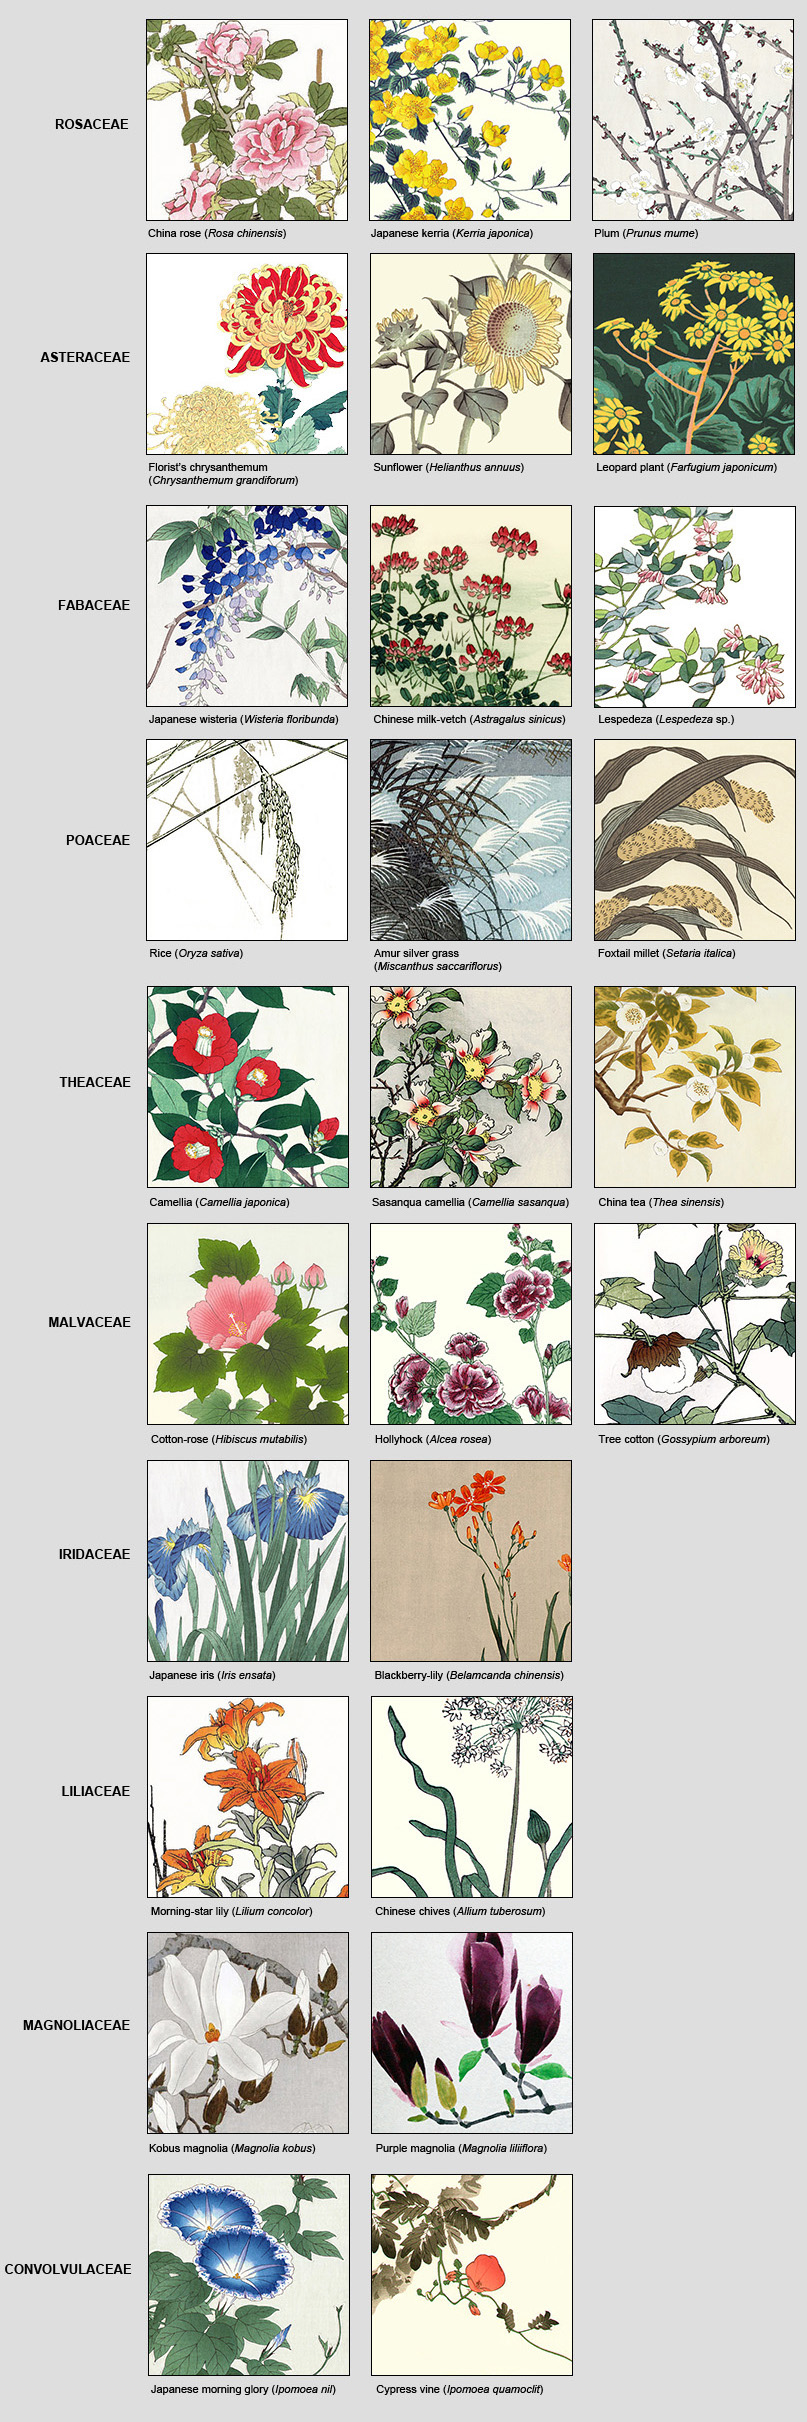 Plant Families Blog Of The Reader Collection Of Japanese Flower